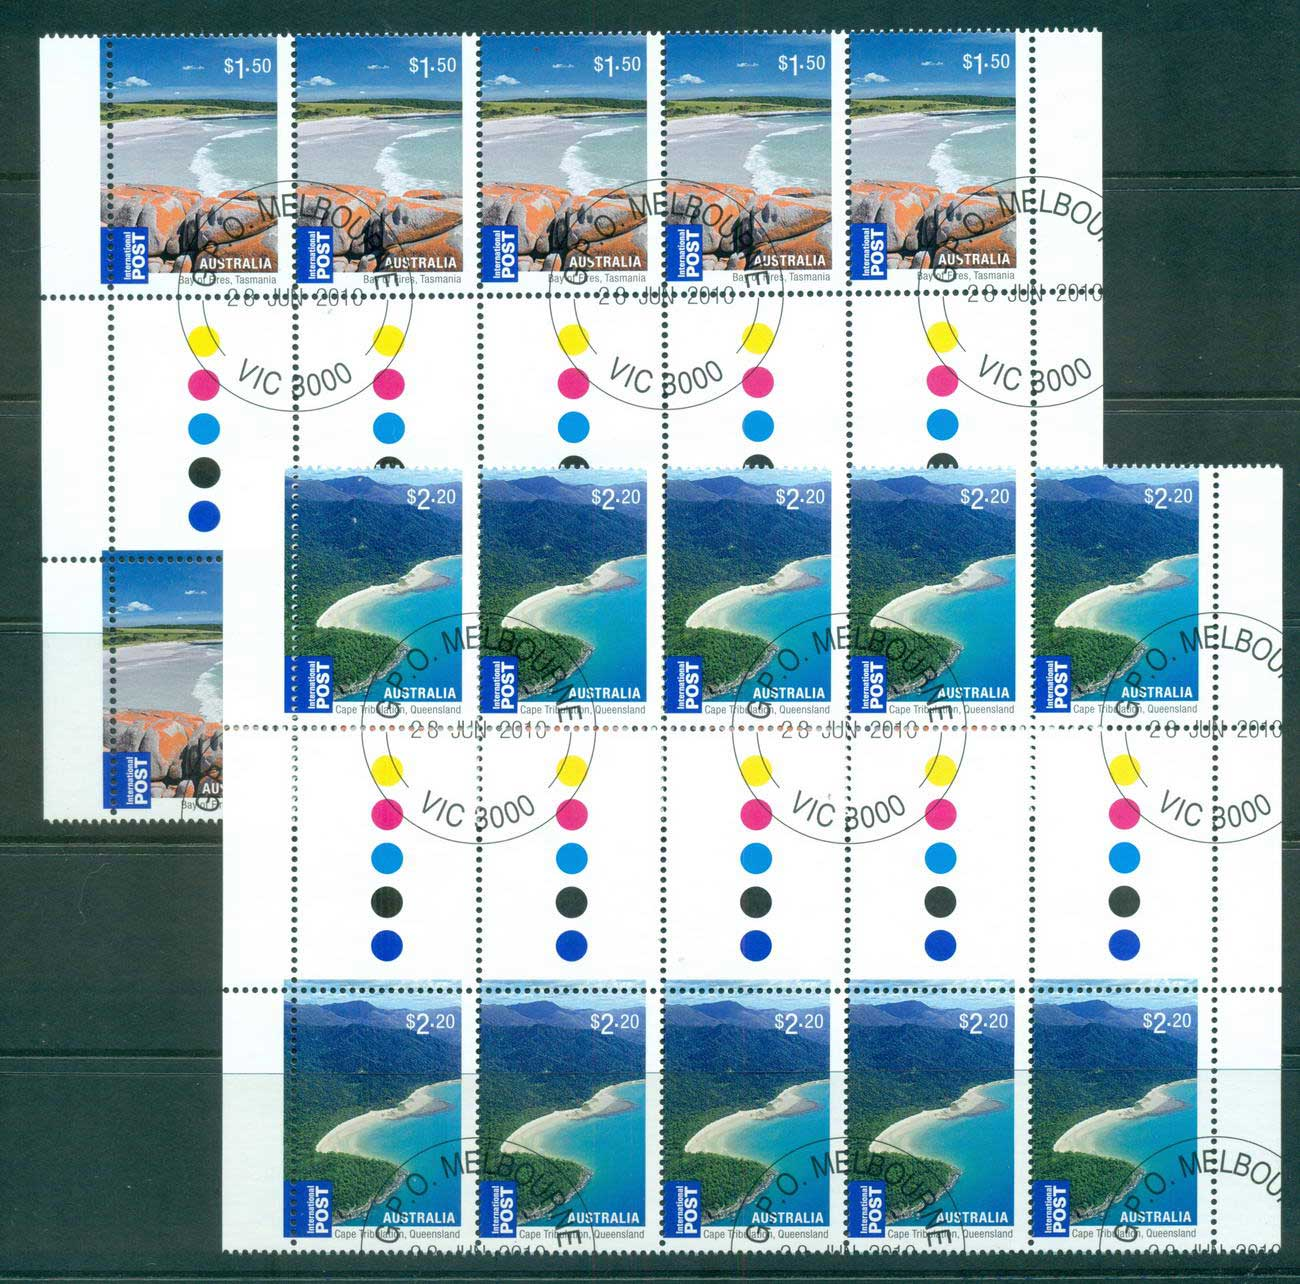 Australia 2010 Beaches Internationals $1.50, $2.20 Gutter Blocks 10 CTO, lot54223